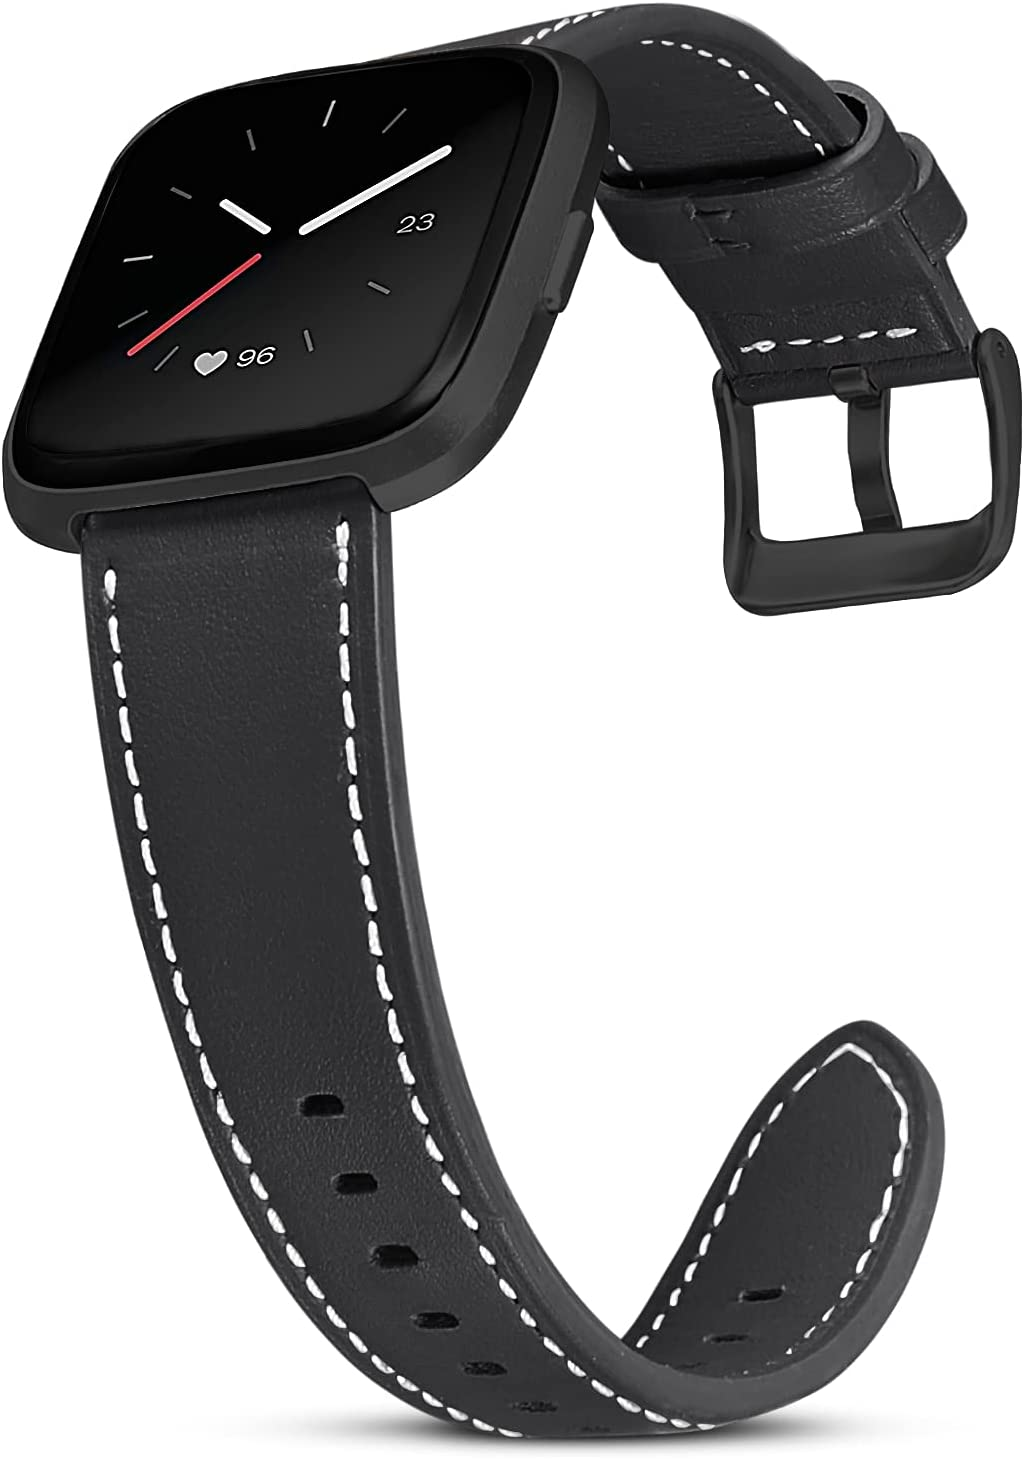 SKYLET Bands Compatible with Fitbit Versa 2/Fitbit Versa Men Women, Soft Classic Genuine Leather Replacement Accessories Wristband for Versa Lite/Versa SE with Black